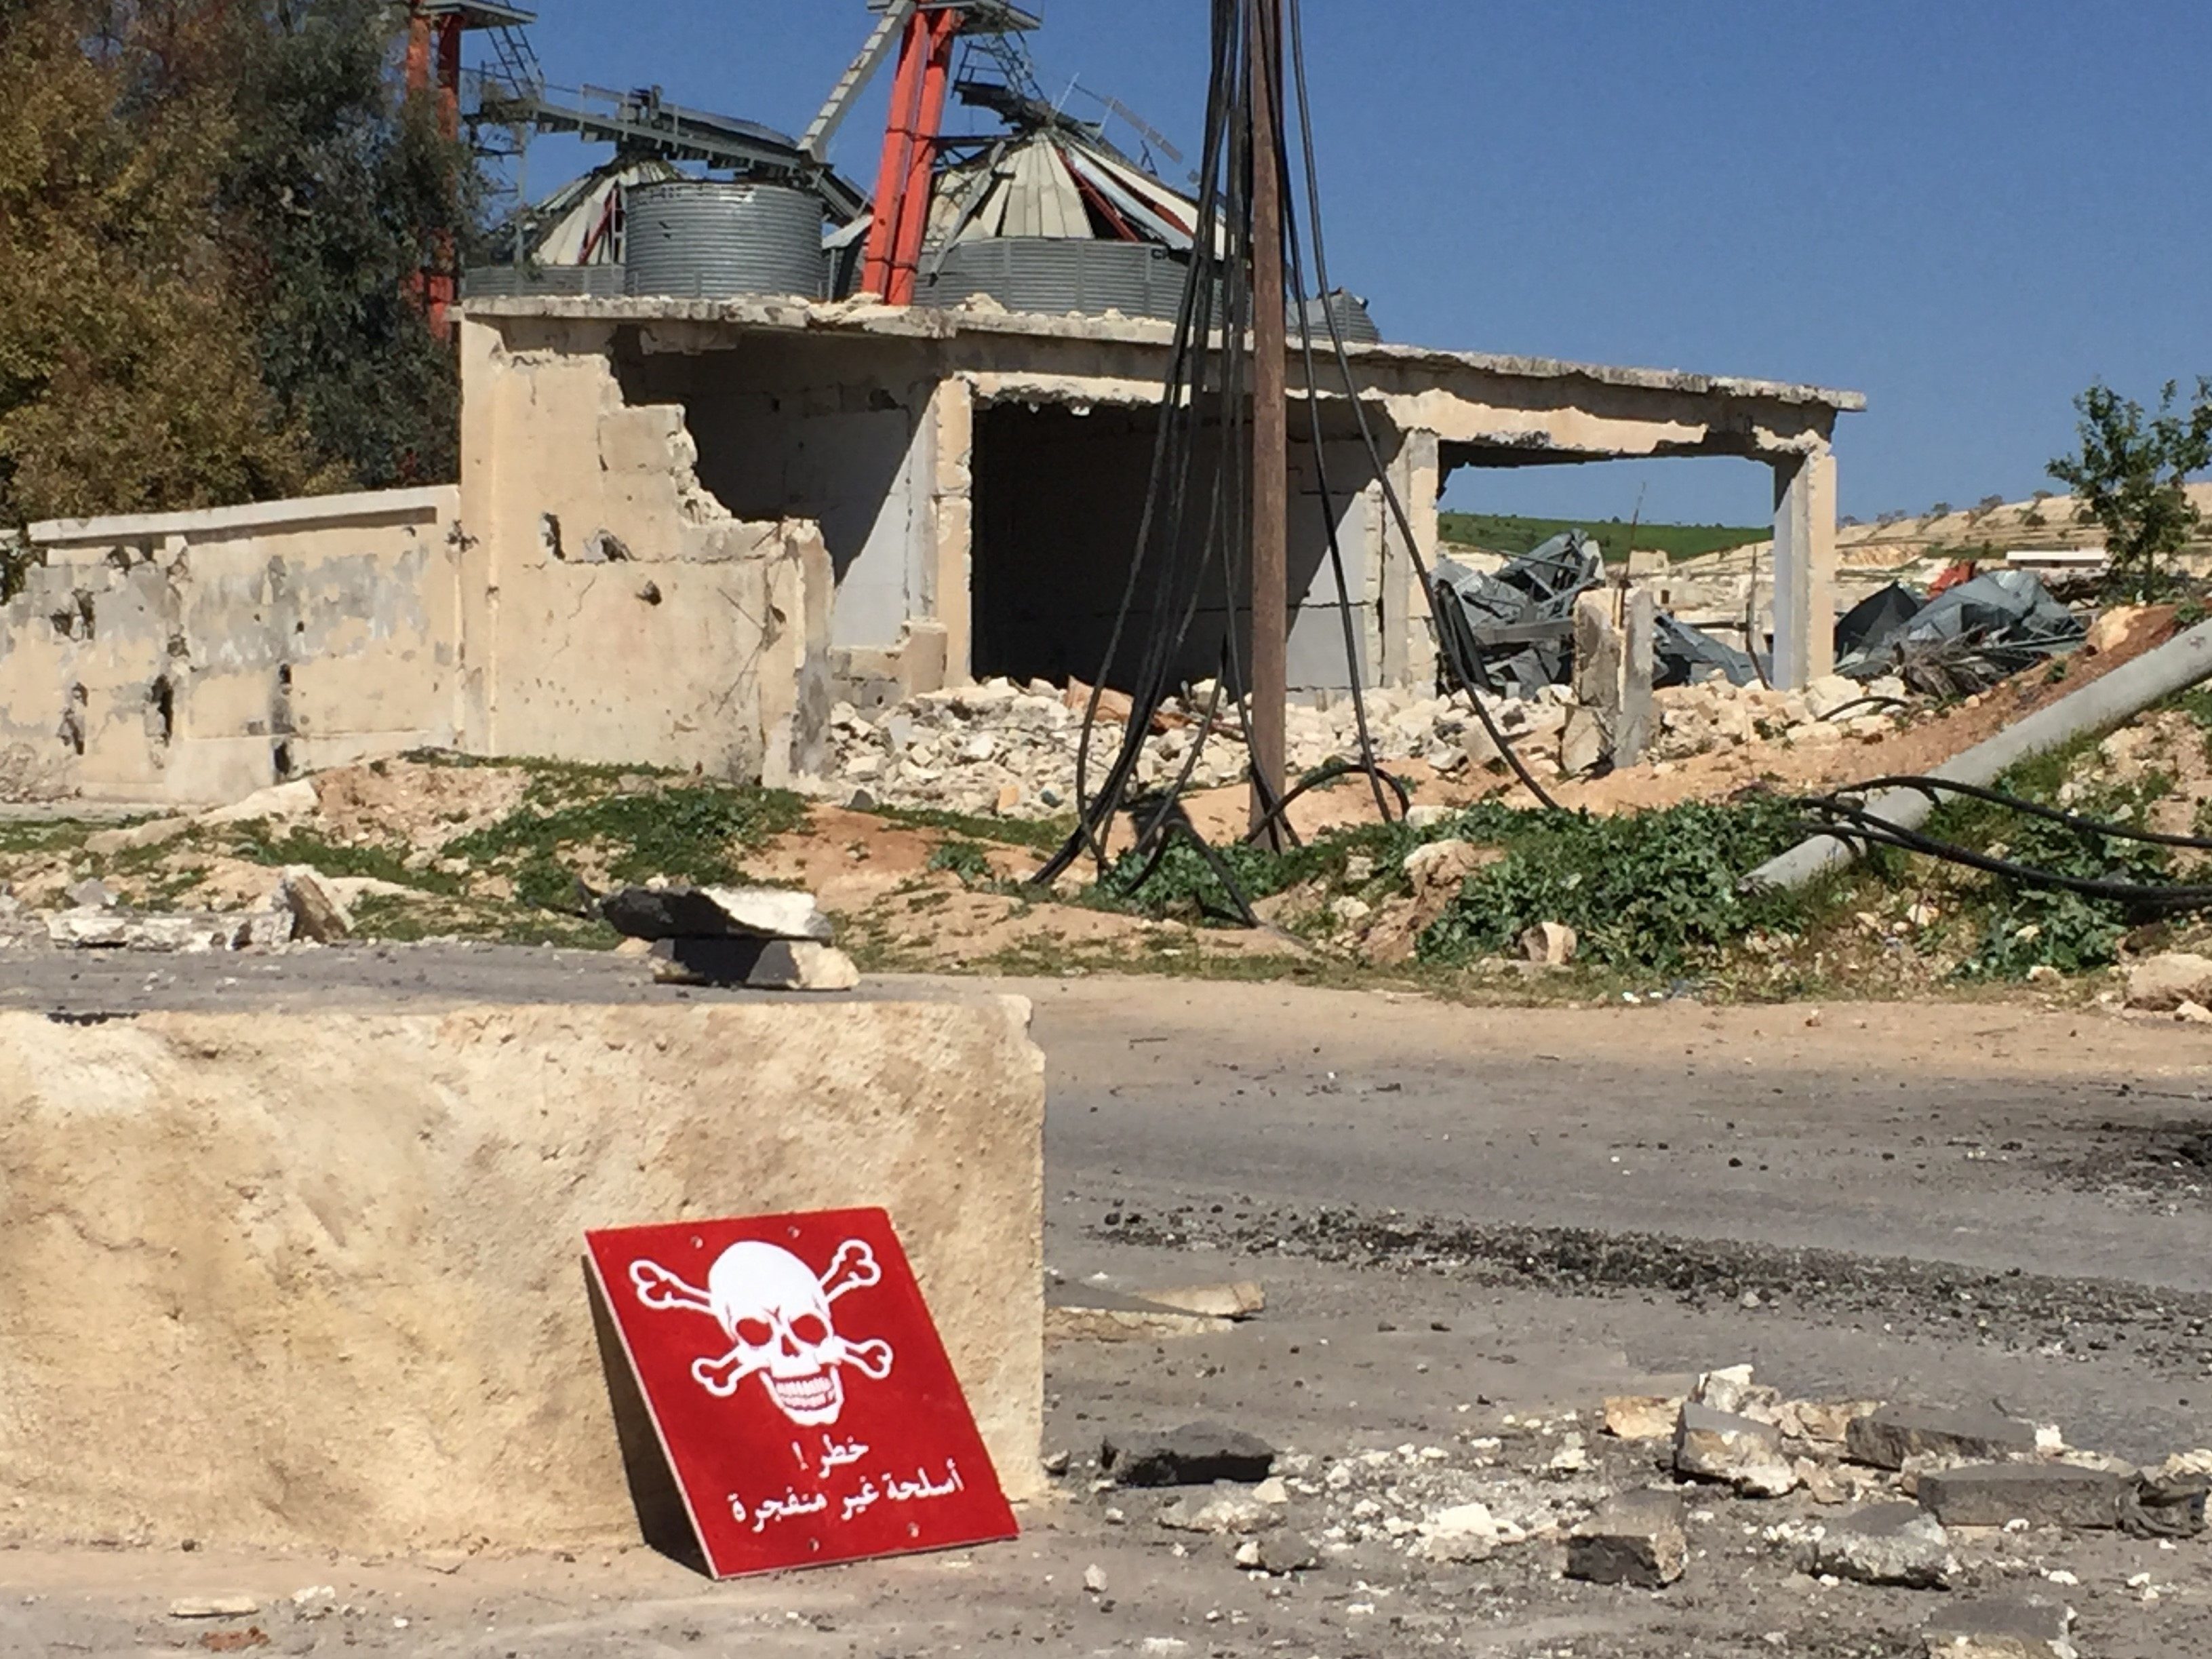 A poison hazard danger sign is seen in the town of Khan Shaykun, Idlib, Syria. At least 70 civilians, including 20 children, were killed in a suspected chemical attack in the town.     (Ogun Duru/Anadolu Agency/Getty Images)